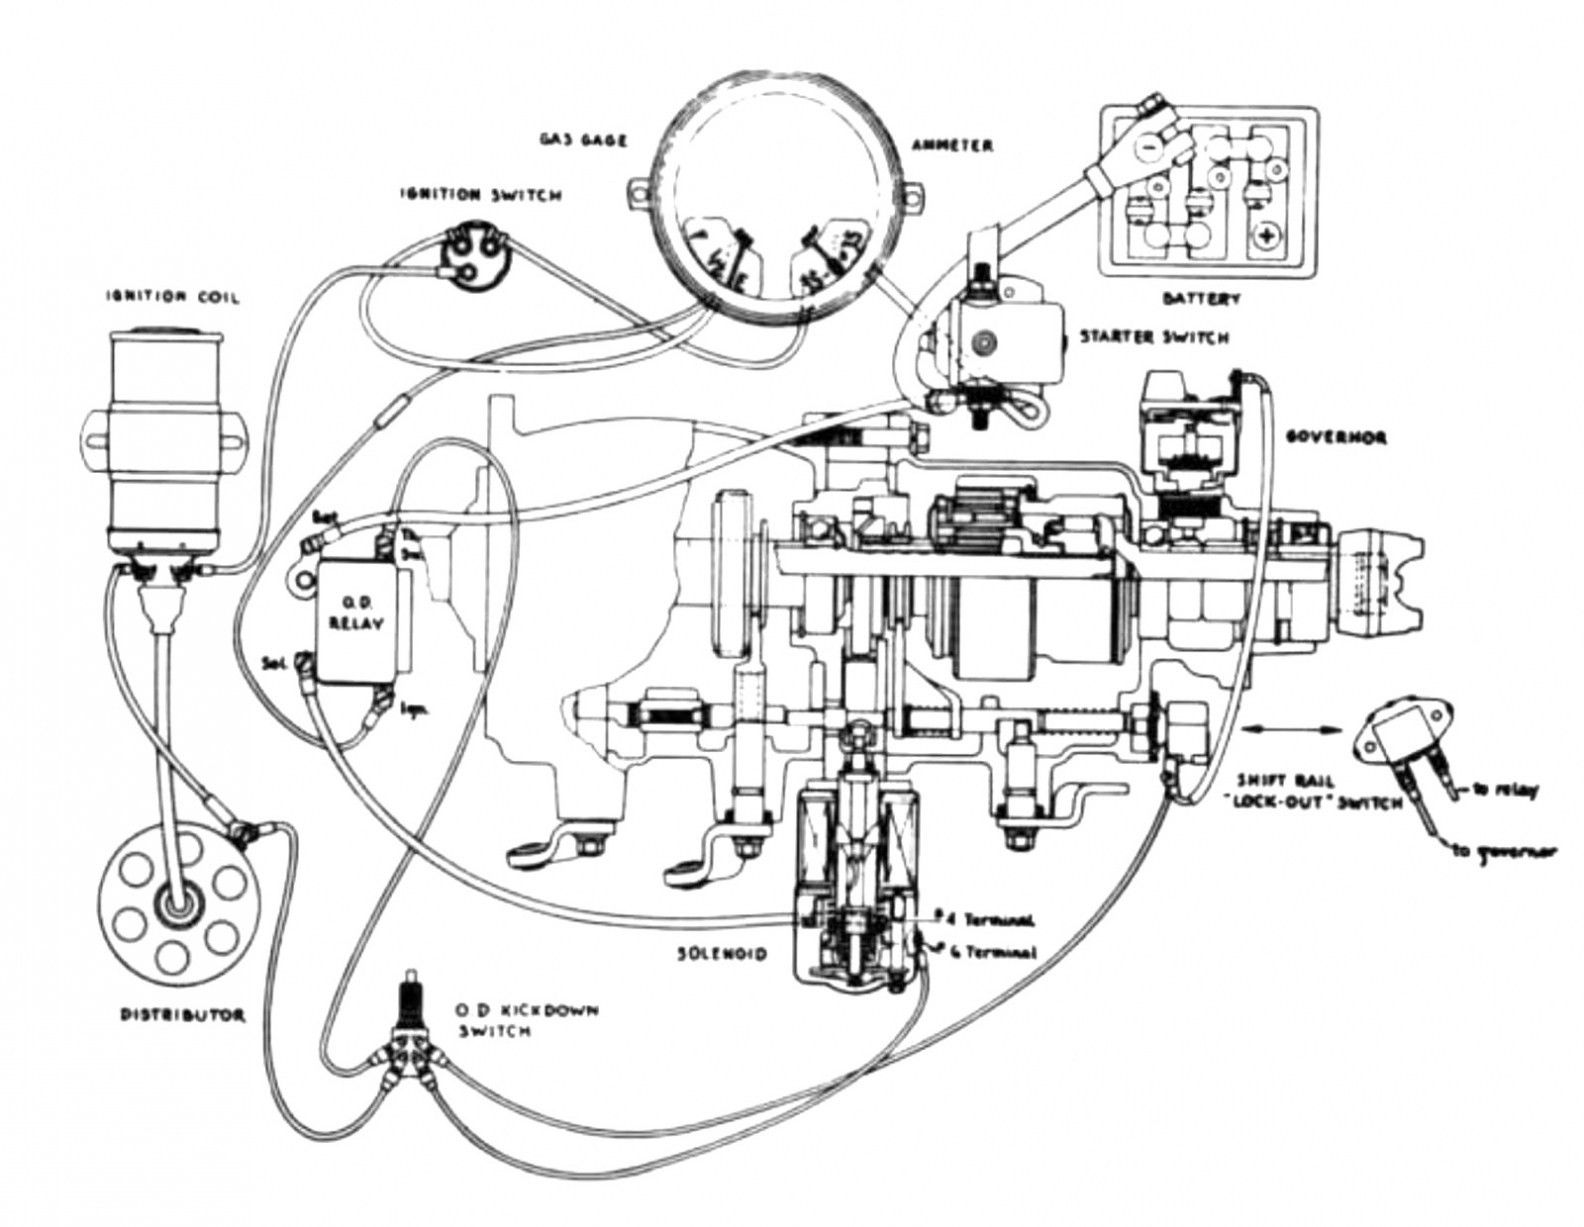 Diagram Unique Wiring Diagram For Mechanically Held Lighting